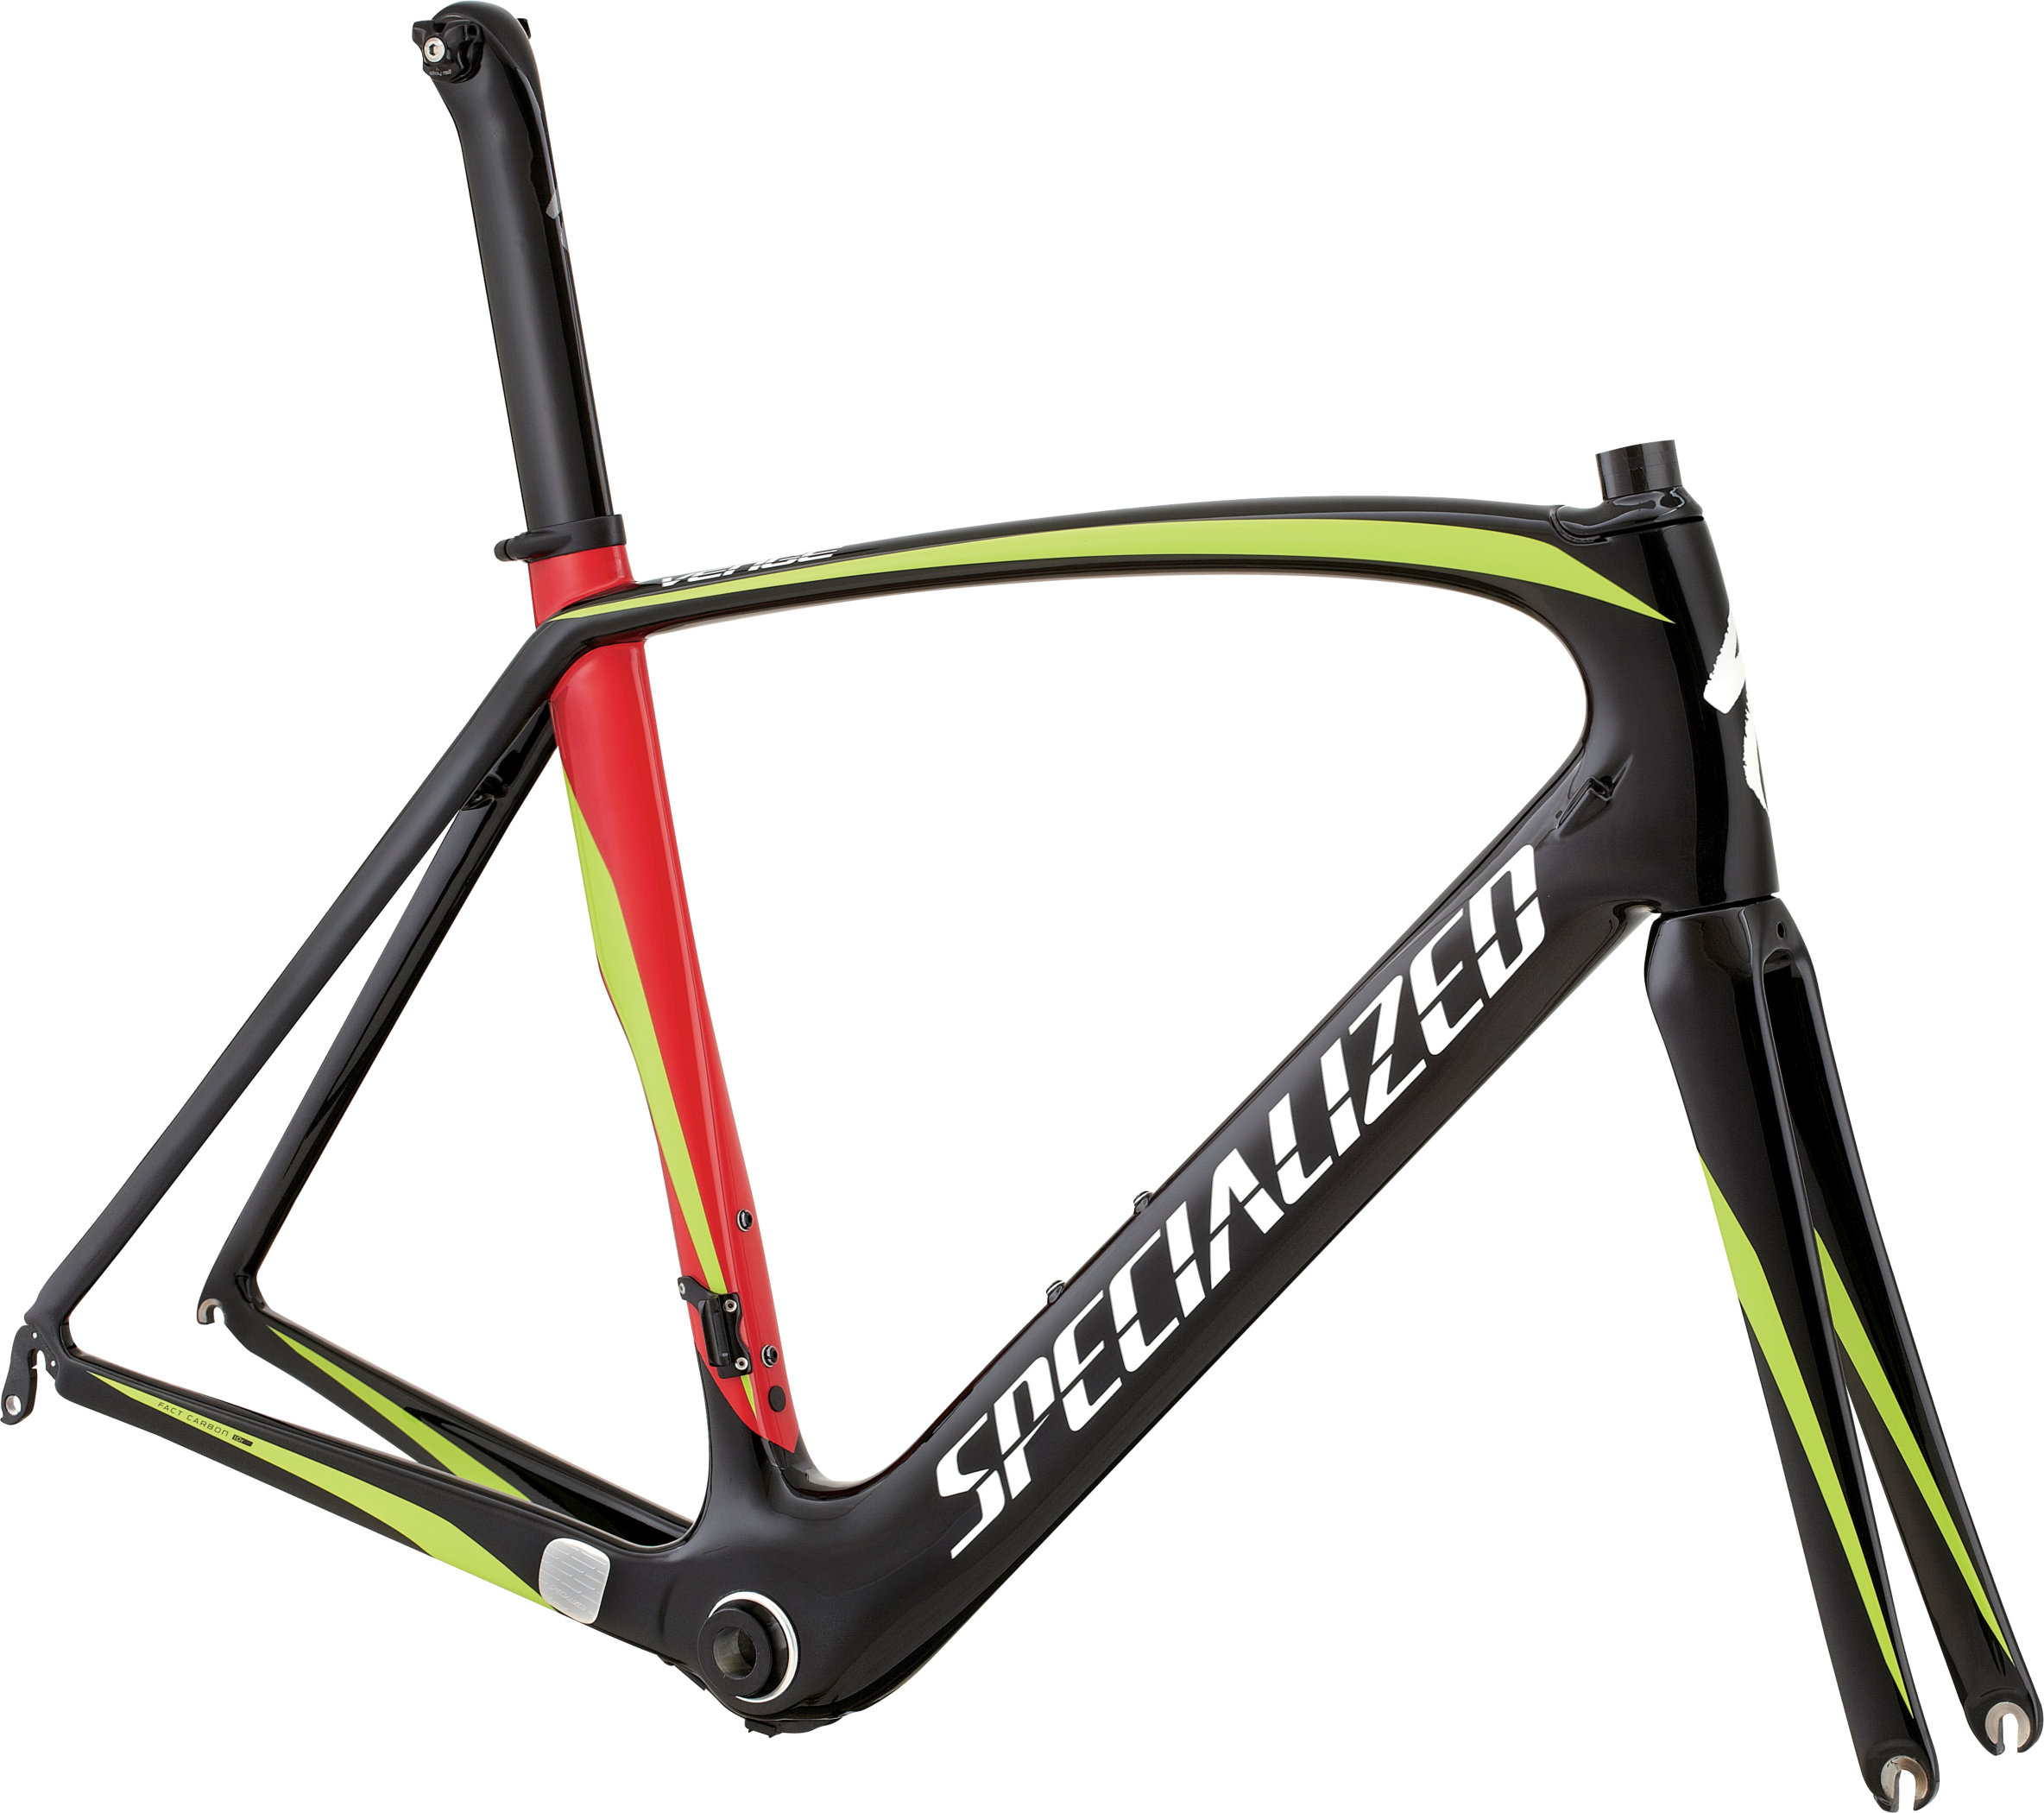 SPECIALIZED VENGE FRMSET TARBLK/HYP/RED 49 - schneider-sports